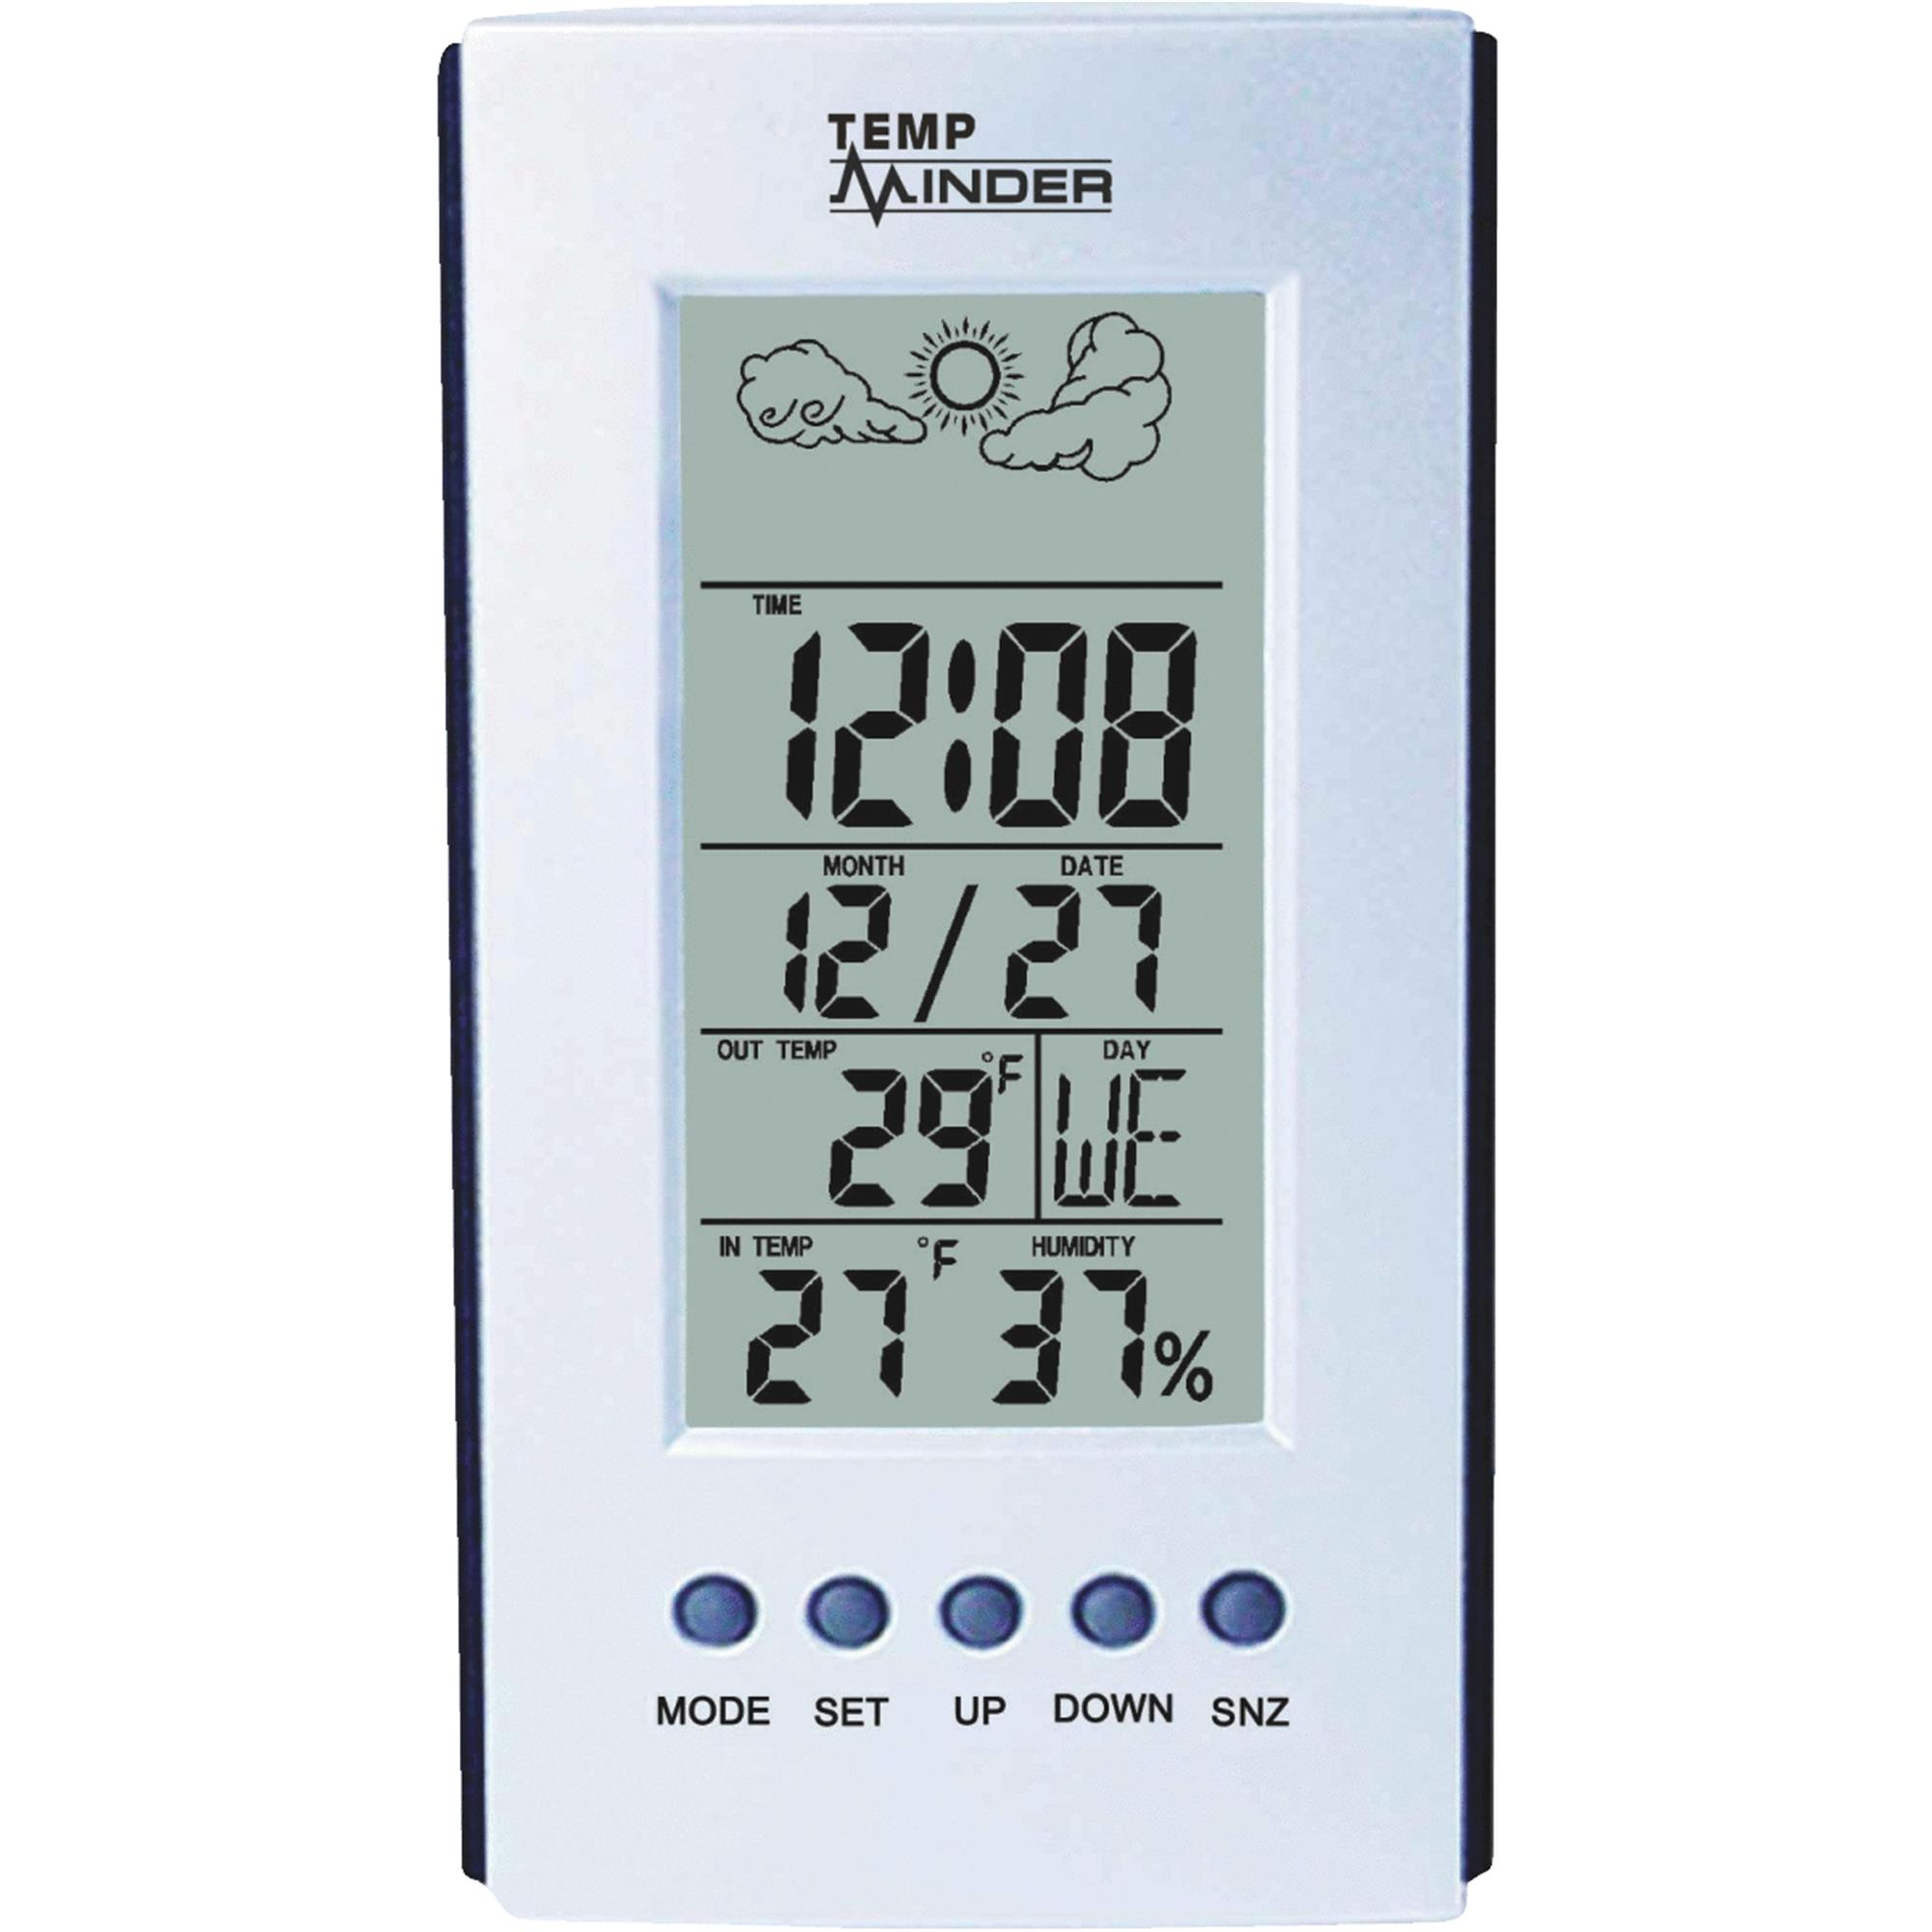 Temp Minder Full Featured Weather Station